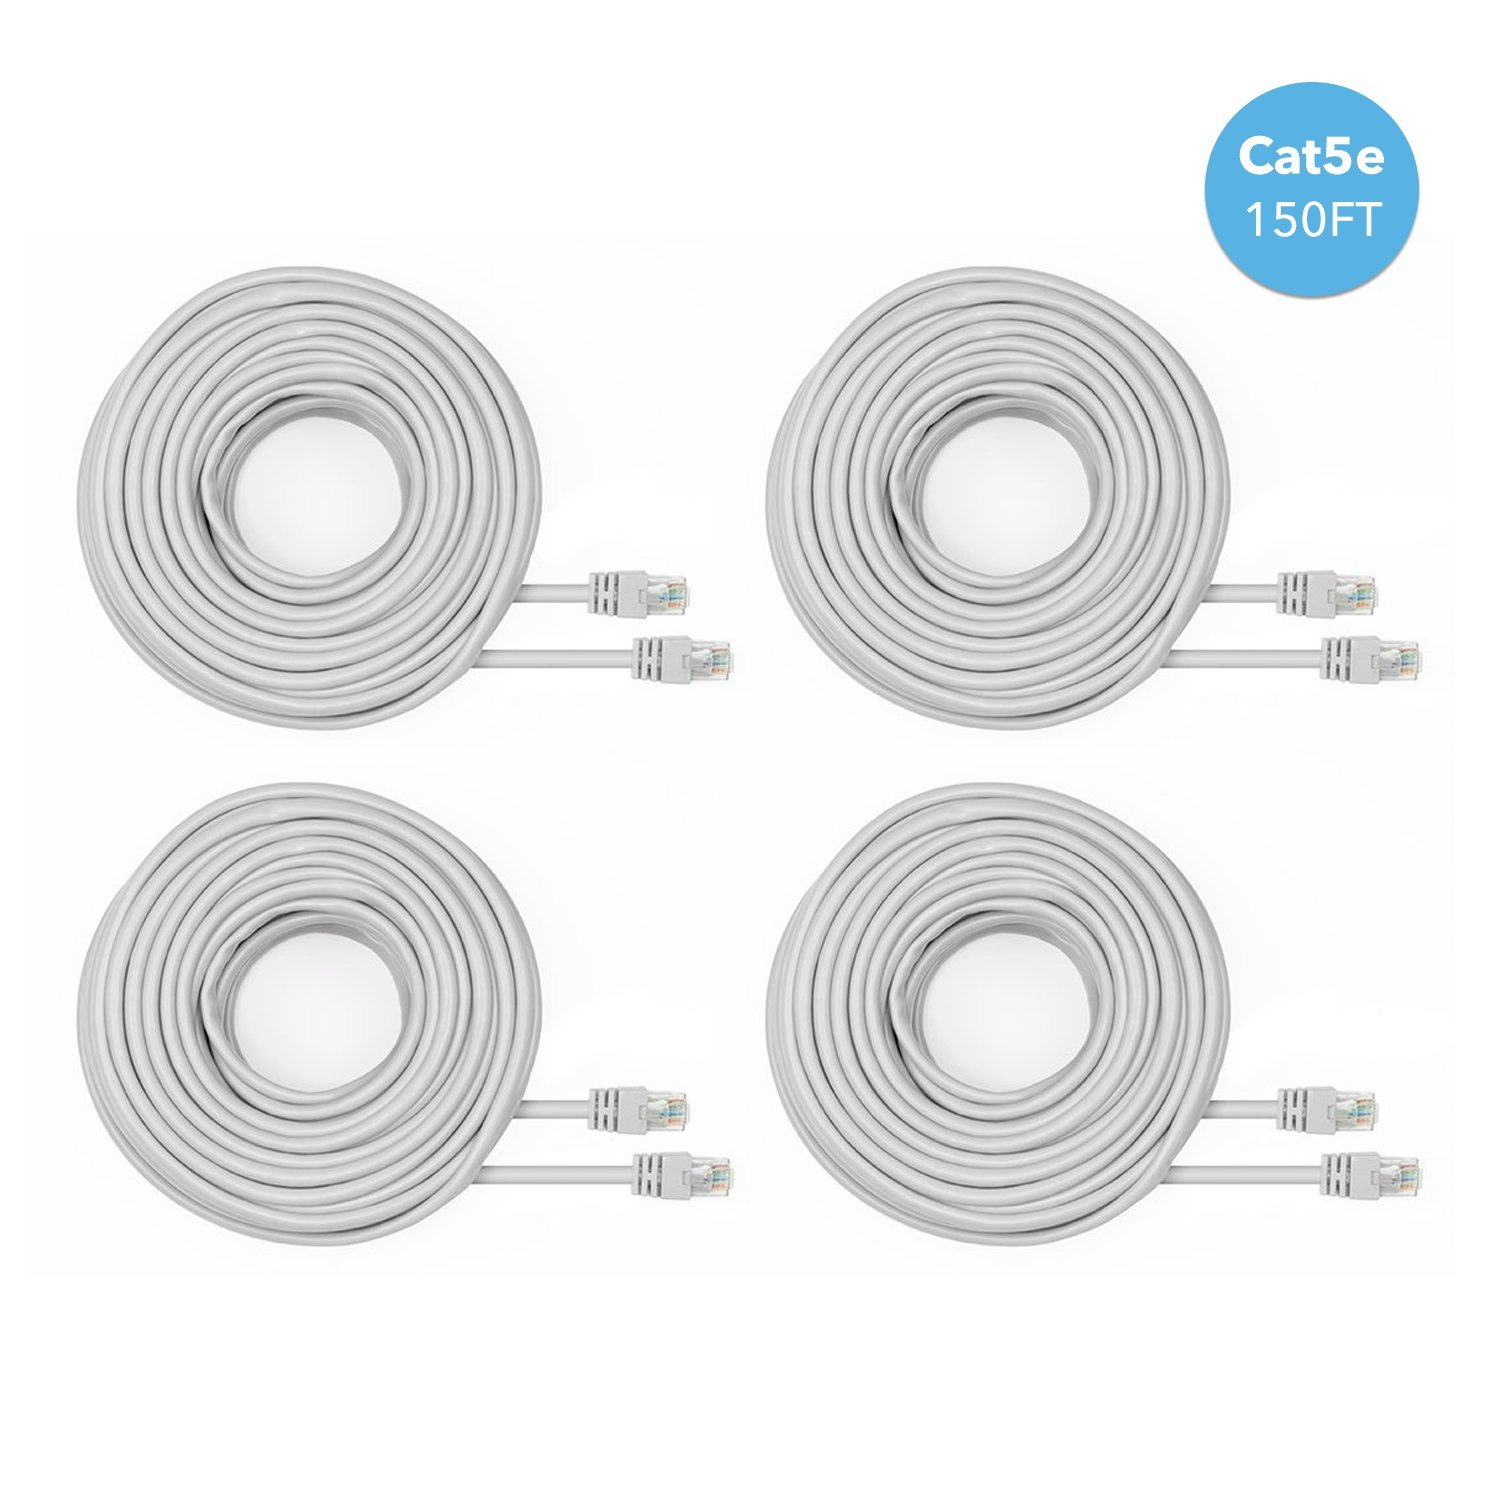 Amcrest Cat5e Cable 150ft Ethernet Cable Internet High Speed Network Cable for POE Security Cameras, Smart TV, PS4, Xbox One, Router, Laptop, Computer, Home, 4-Pack (4PACK-CAT5ECABLE150) by Amcrest (Image #1)